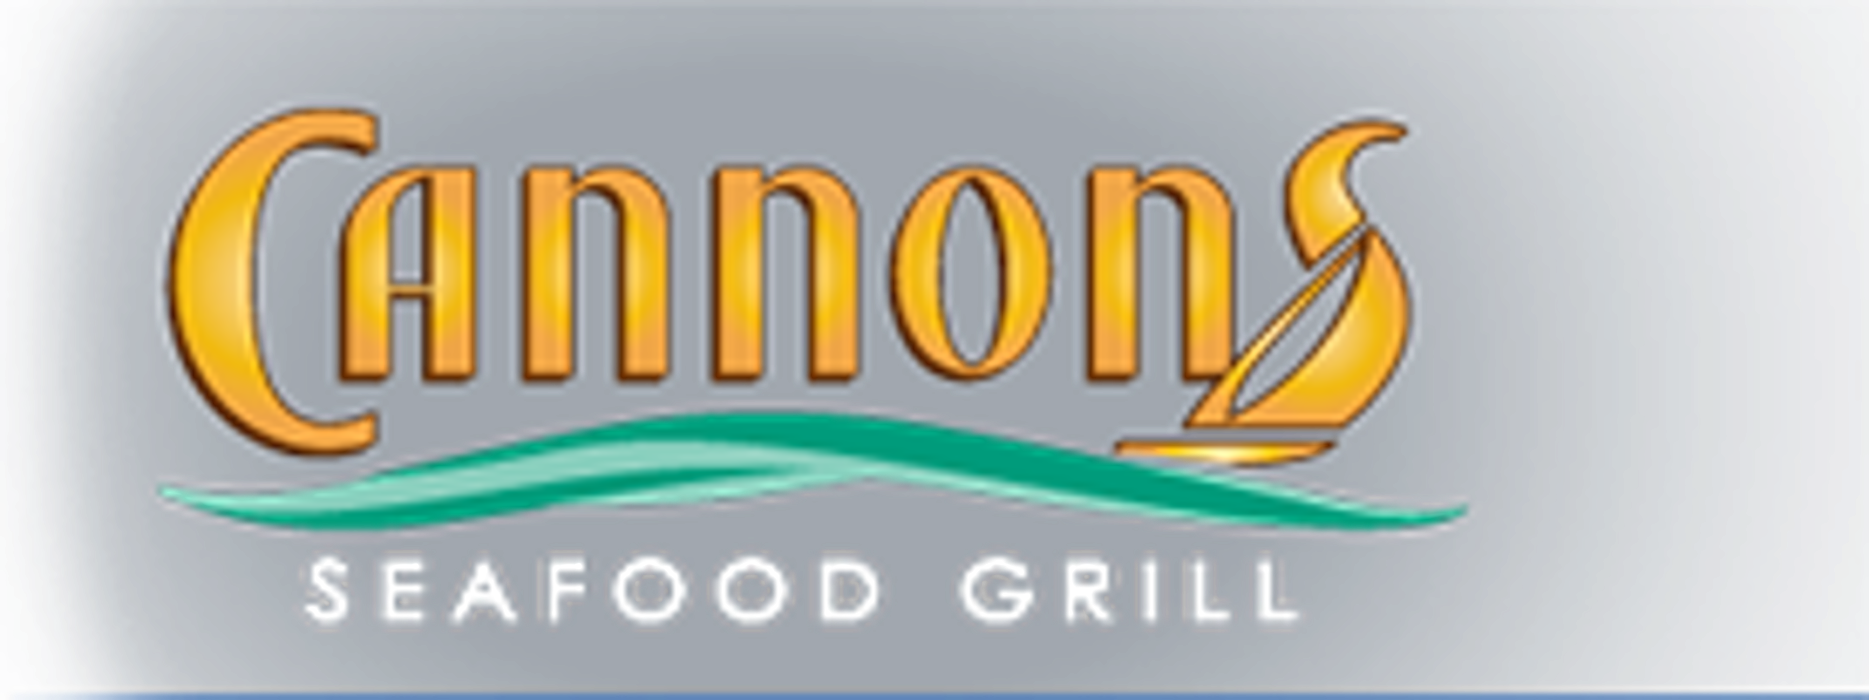 Cannons Seafood Grill - Dana Point, CA